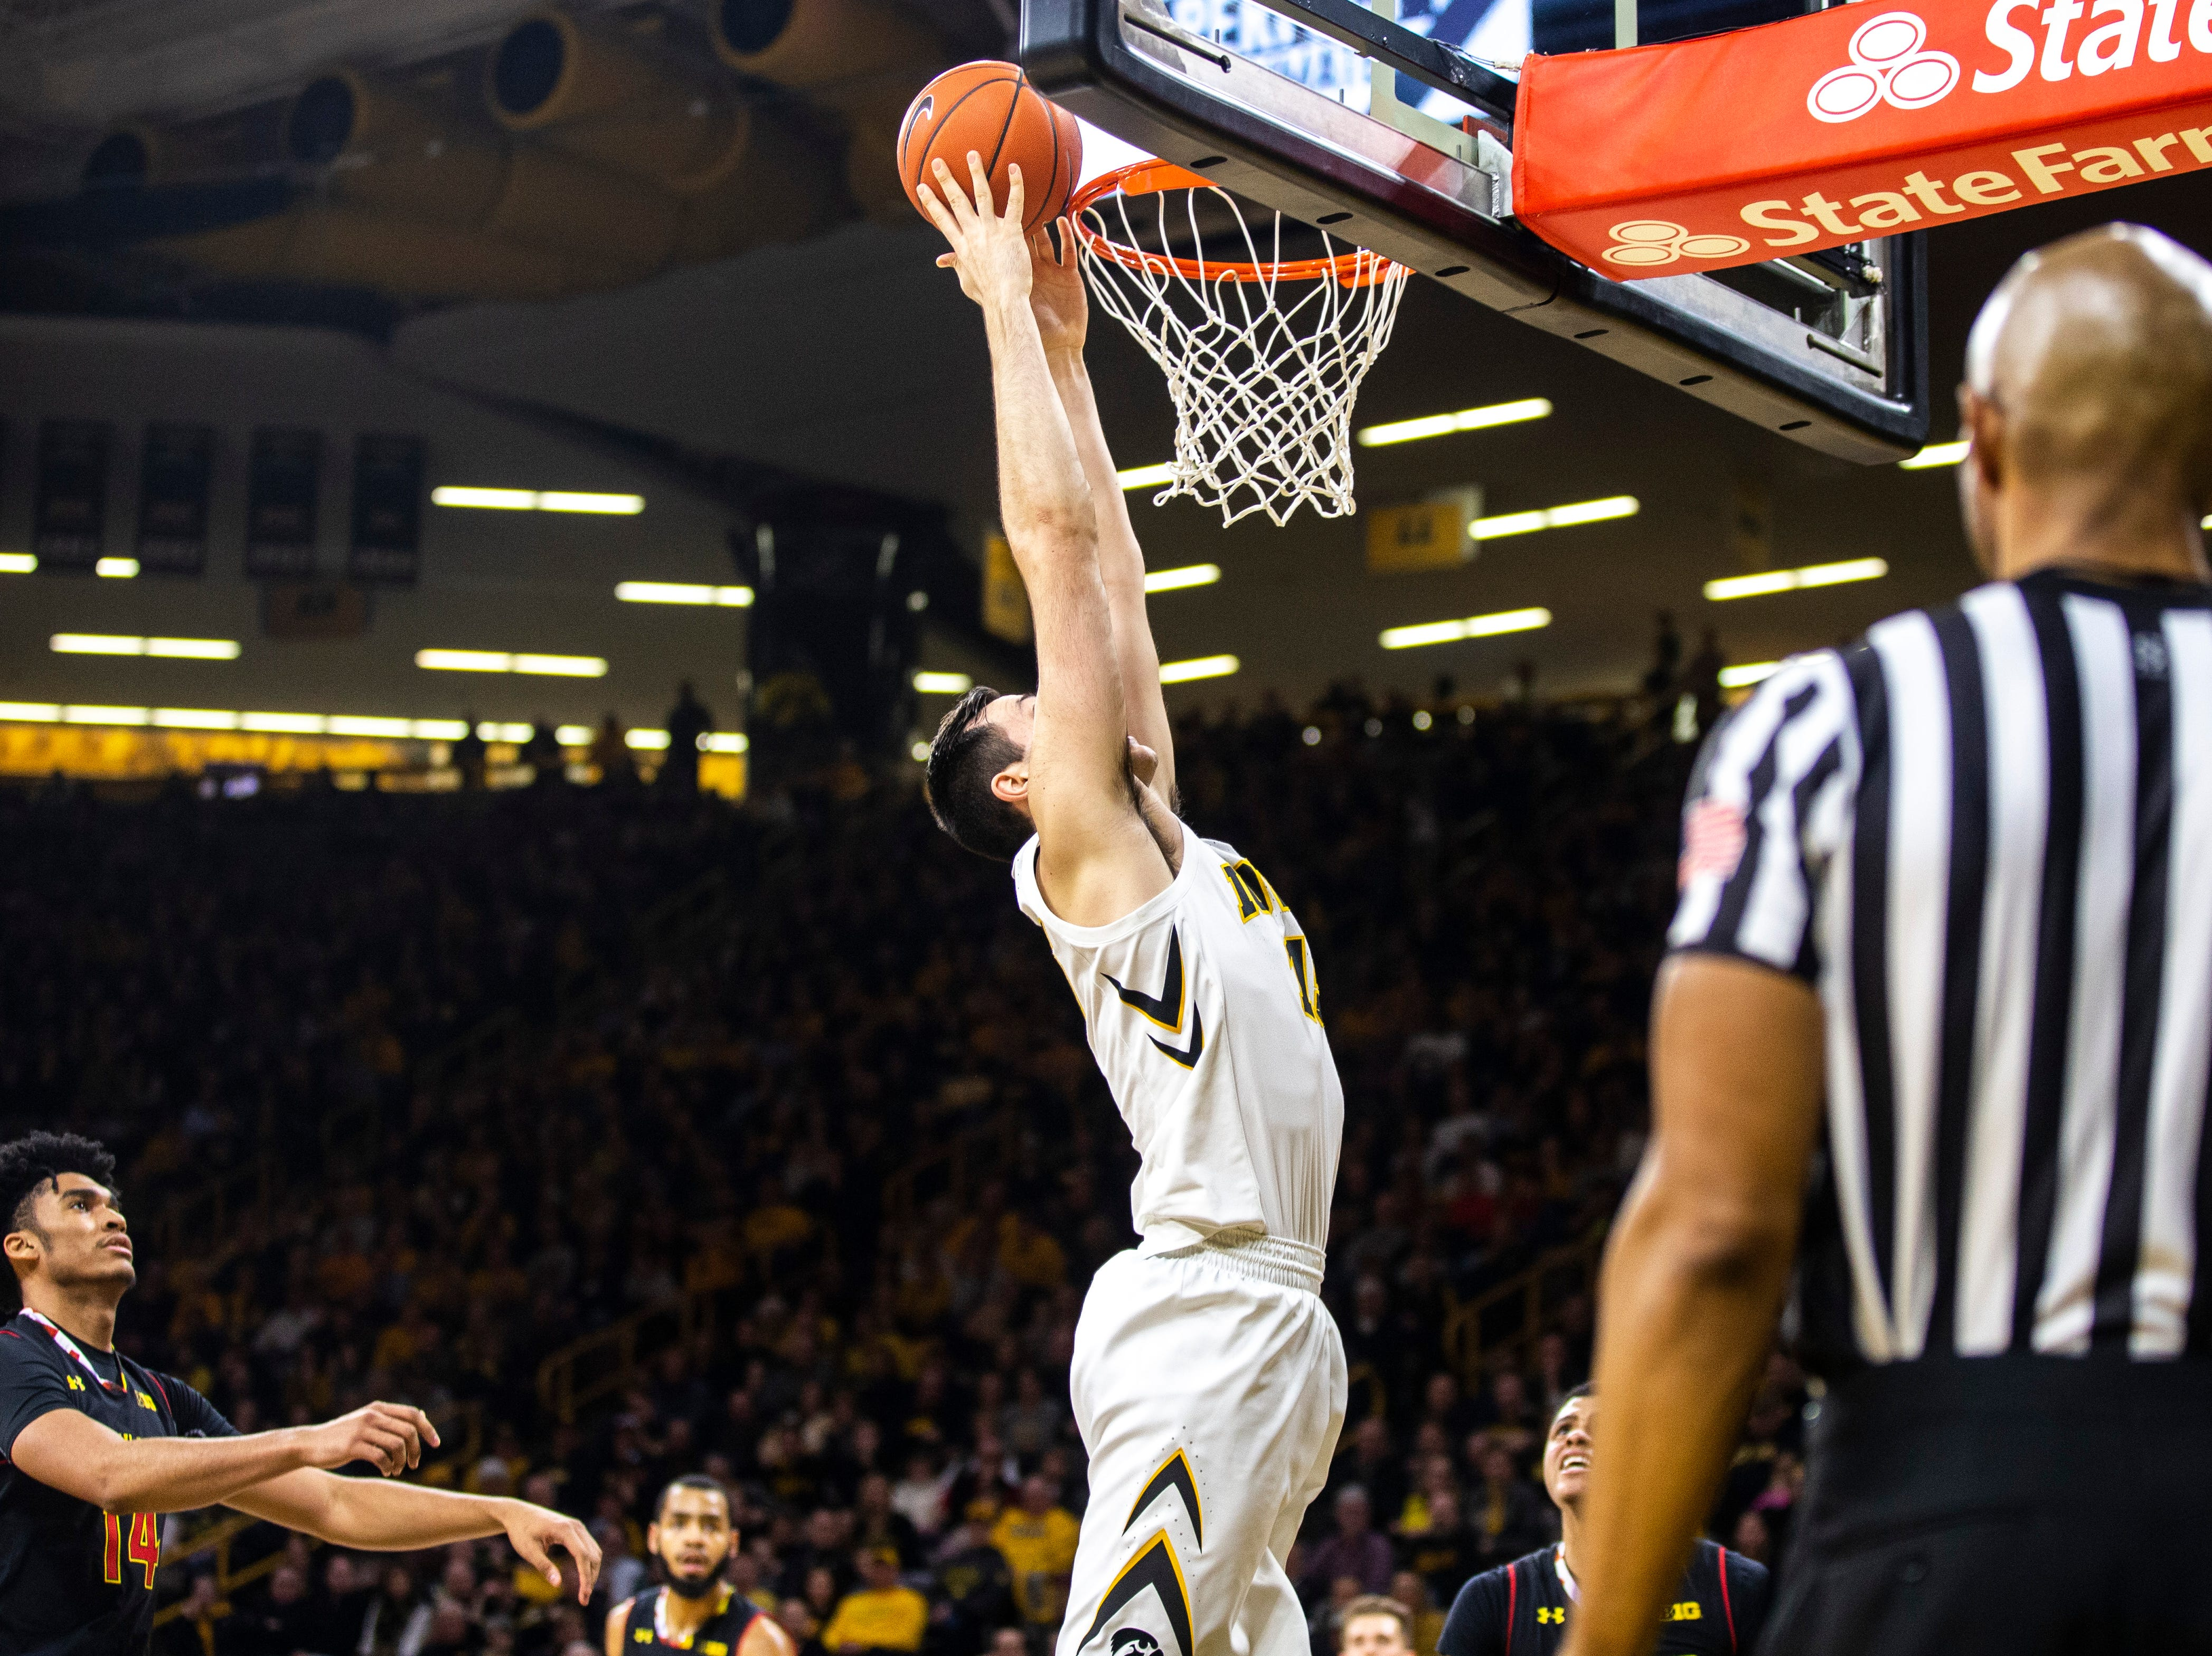 Iowa forward Ryan Kriener (15) misses a dunk while Maryland forward Ricky Lindo Jr. (14) defends during a NCAA Big Ten Conference men's basketball game on Tuesday, Feb. 19, 2019 at Carver-Hawkeye Arena in Iowa City, Iowa.